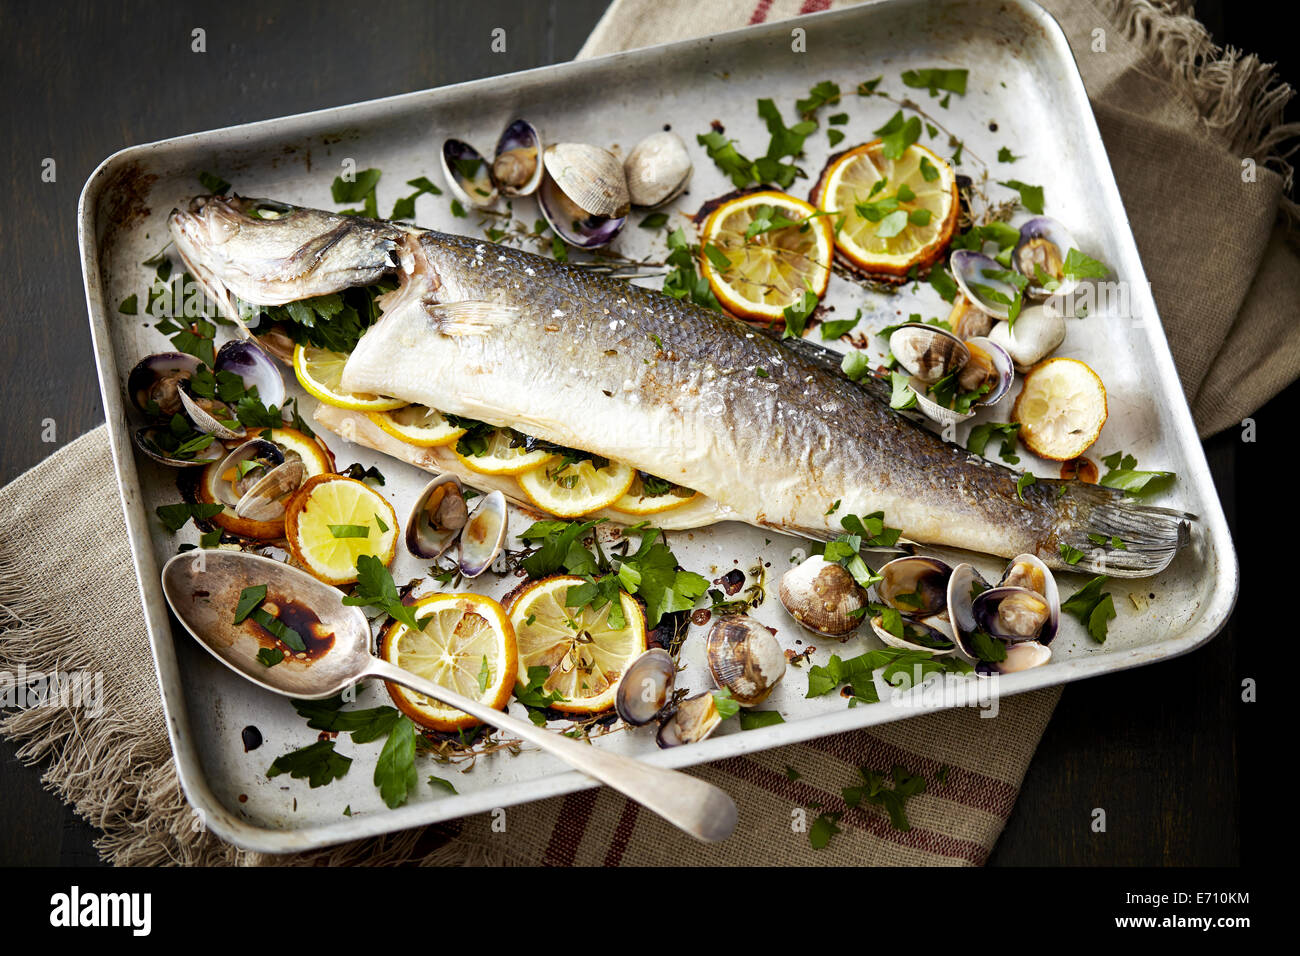 Baking tray with baked fish stuffed with lemon and herbs - Stock Image